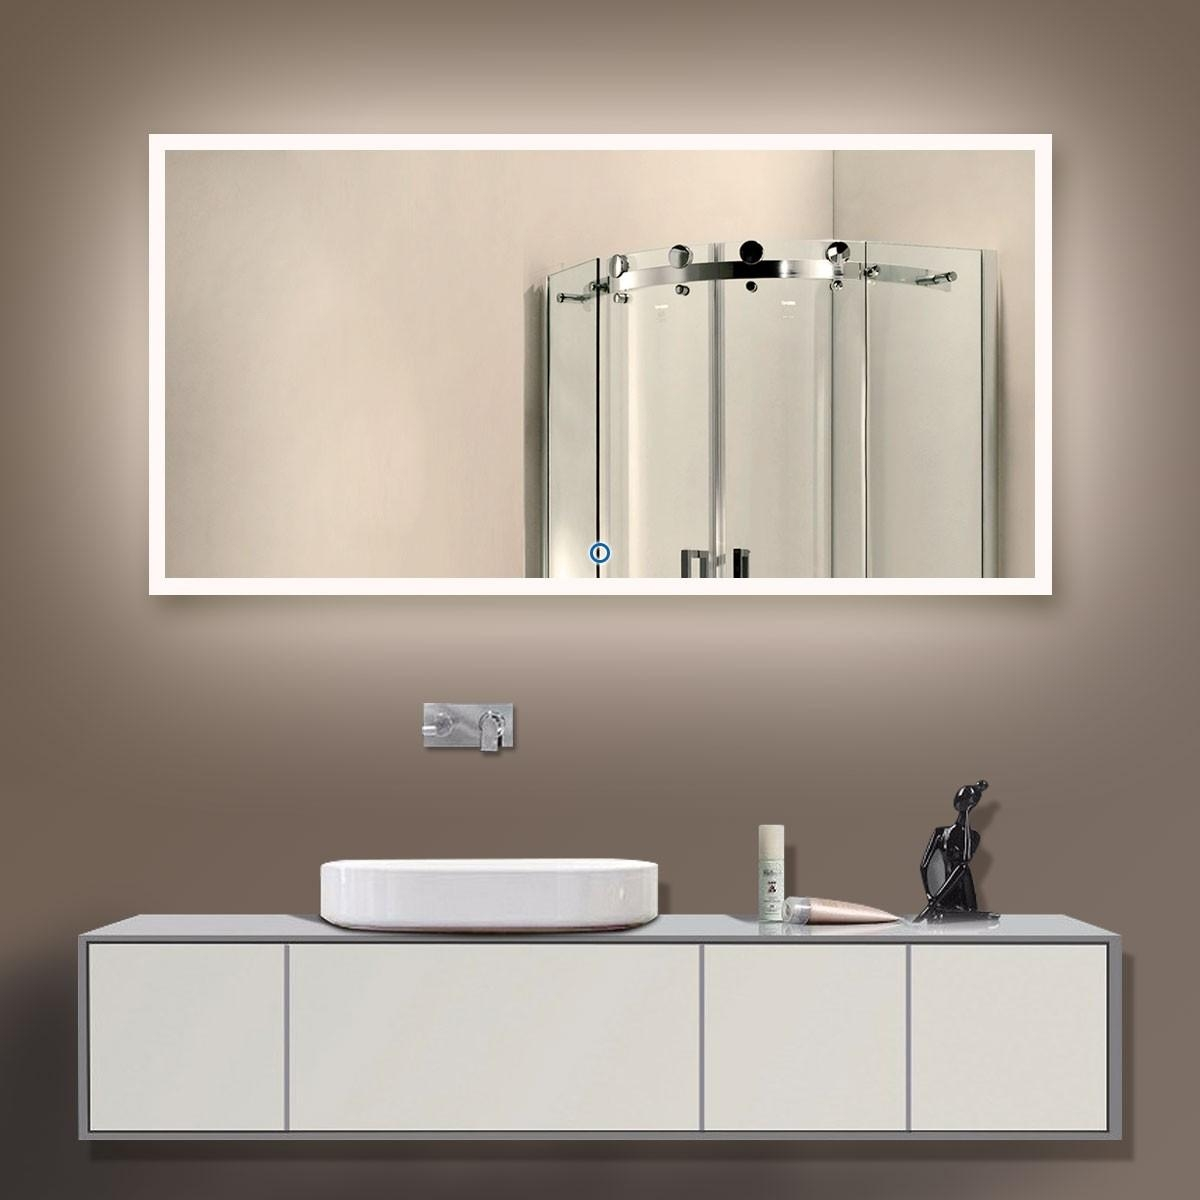 Buy Bathroom Led Lighted Mirrors, Backlit Mirrors | Decoraport Usa With Led Lighted Mirrors (Image 9 of 20)